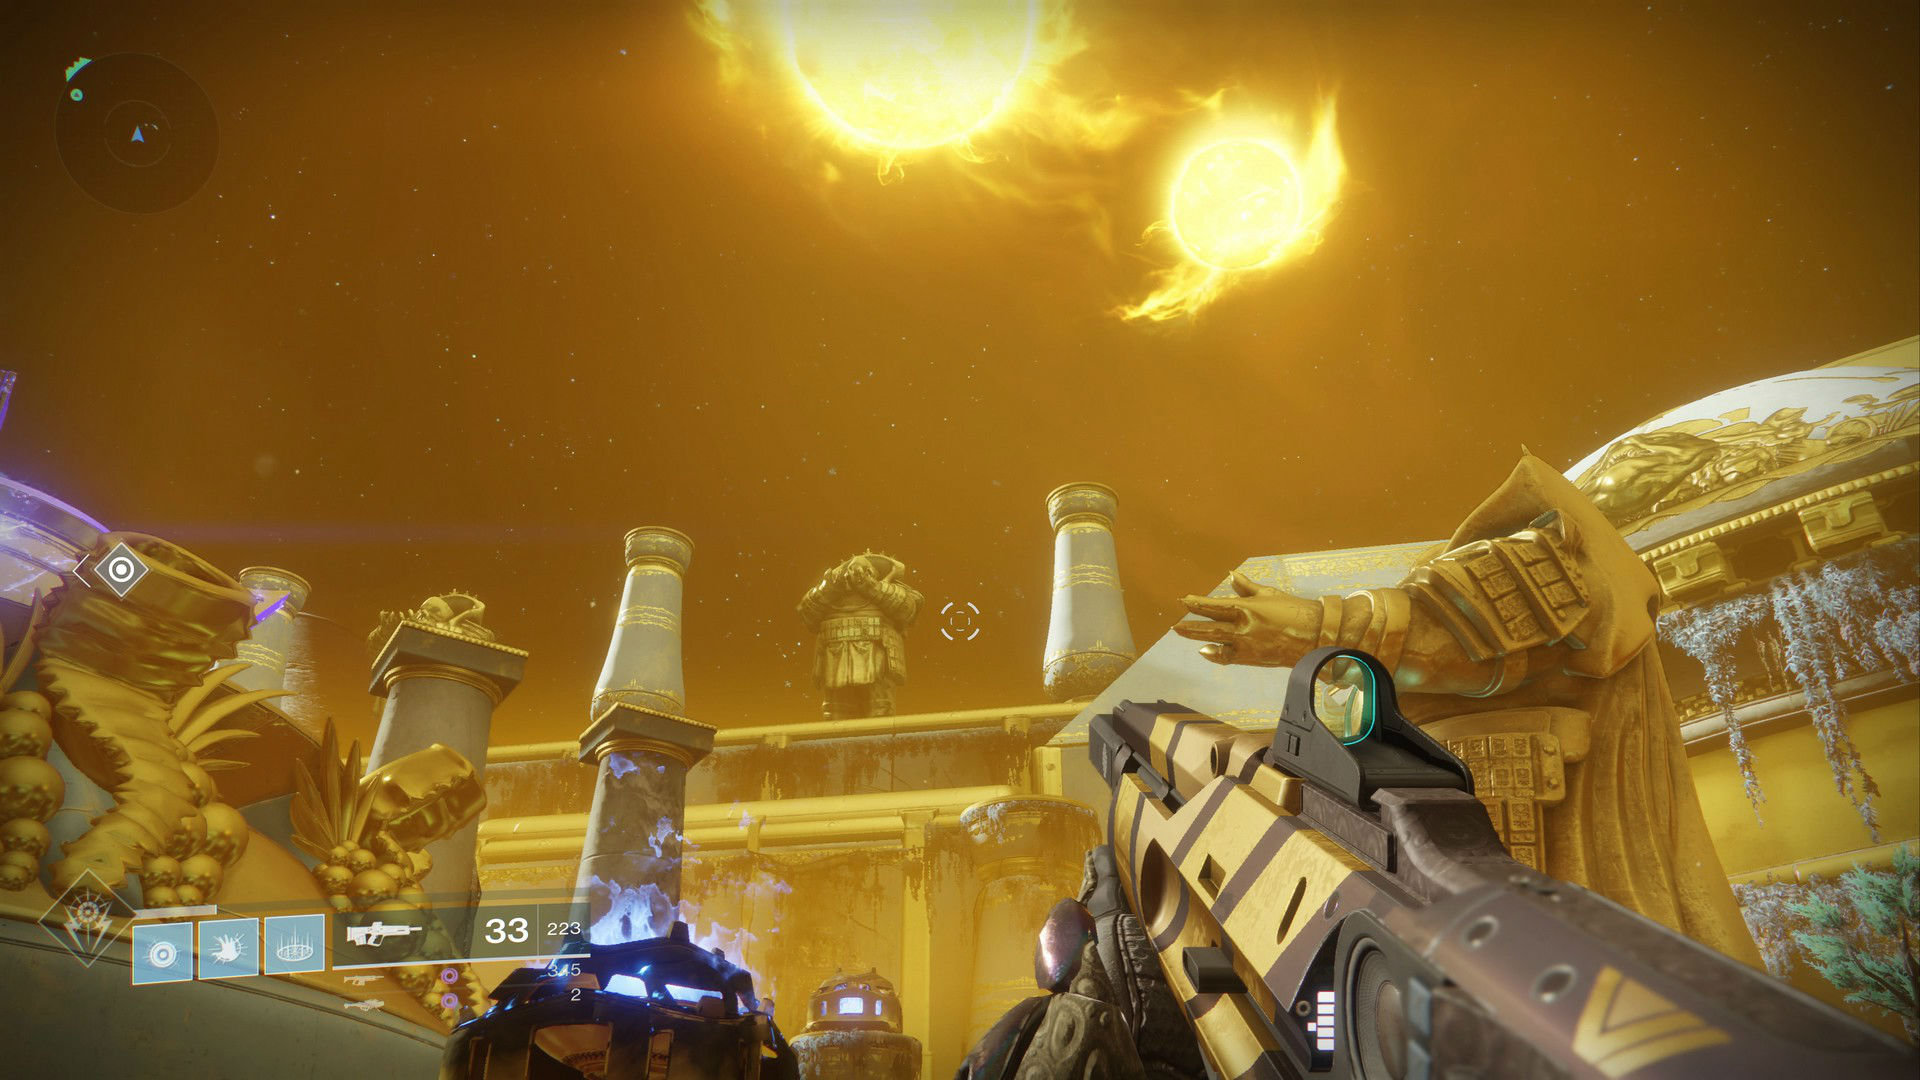 Destiny 2's Spire of Stars raid lair is short and alright, but I miss real raids screenshot